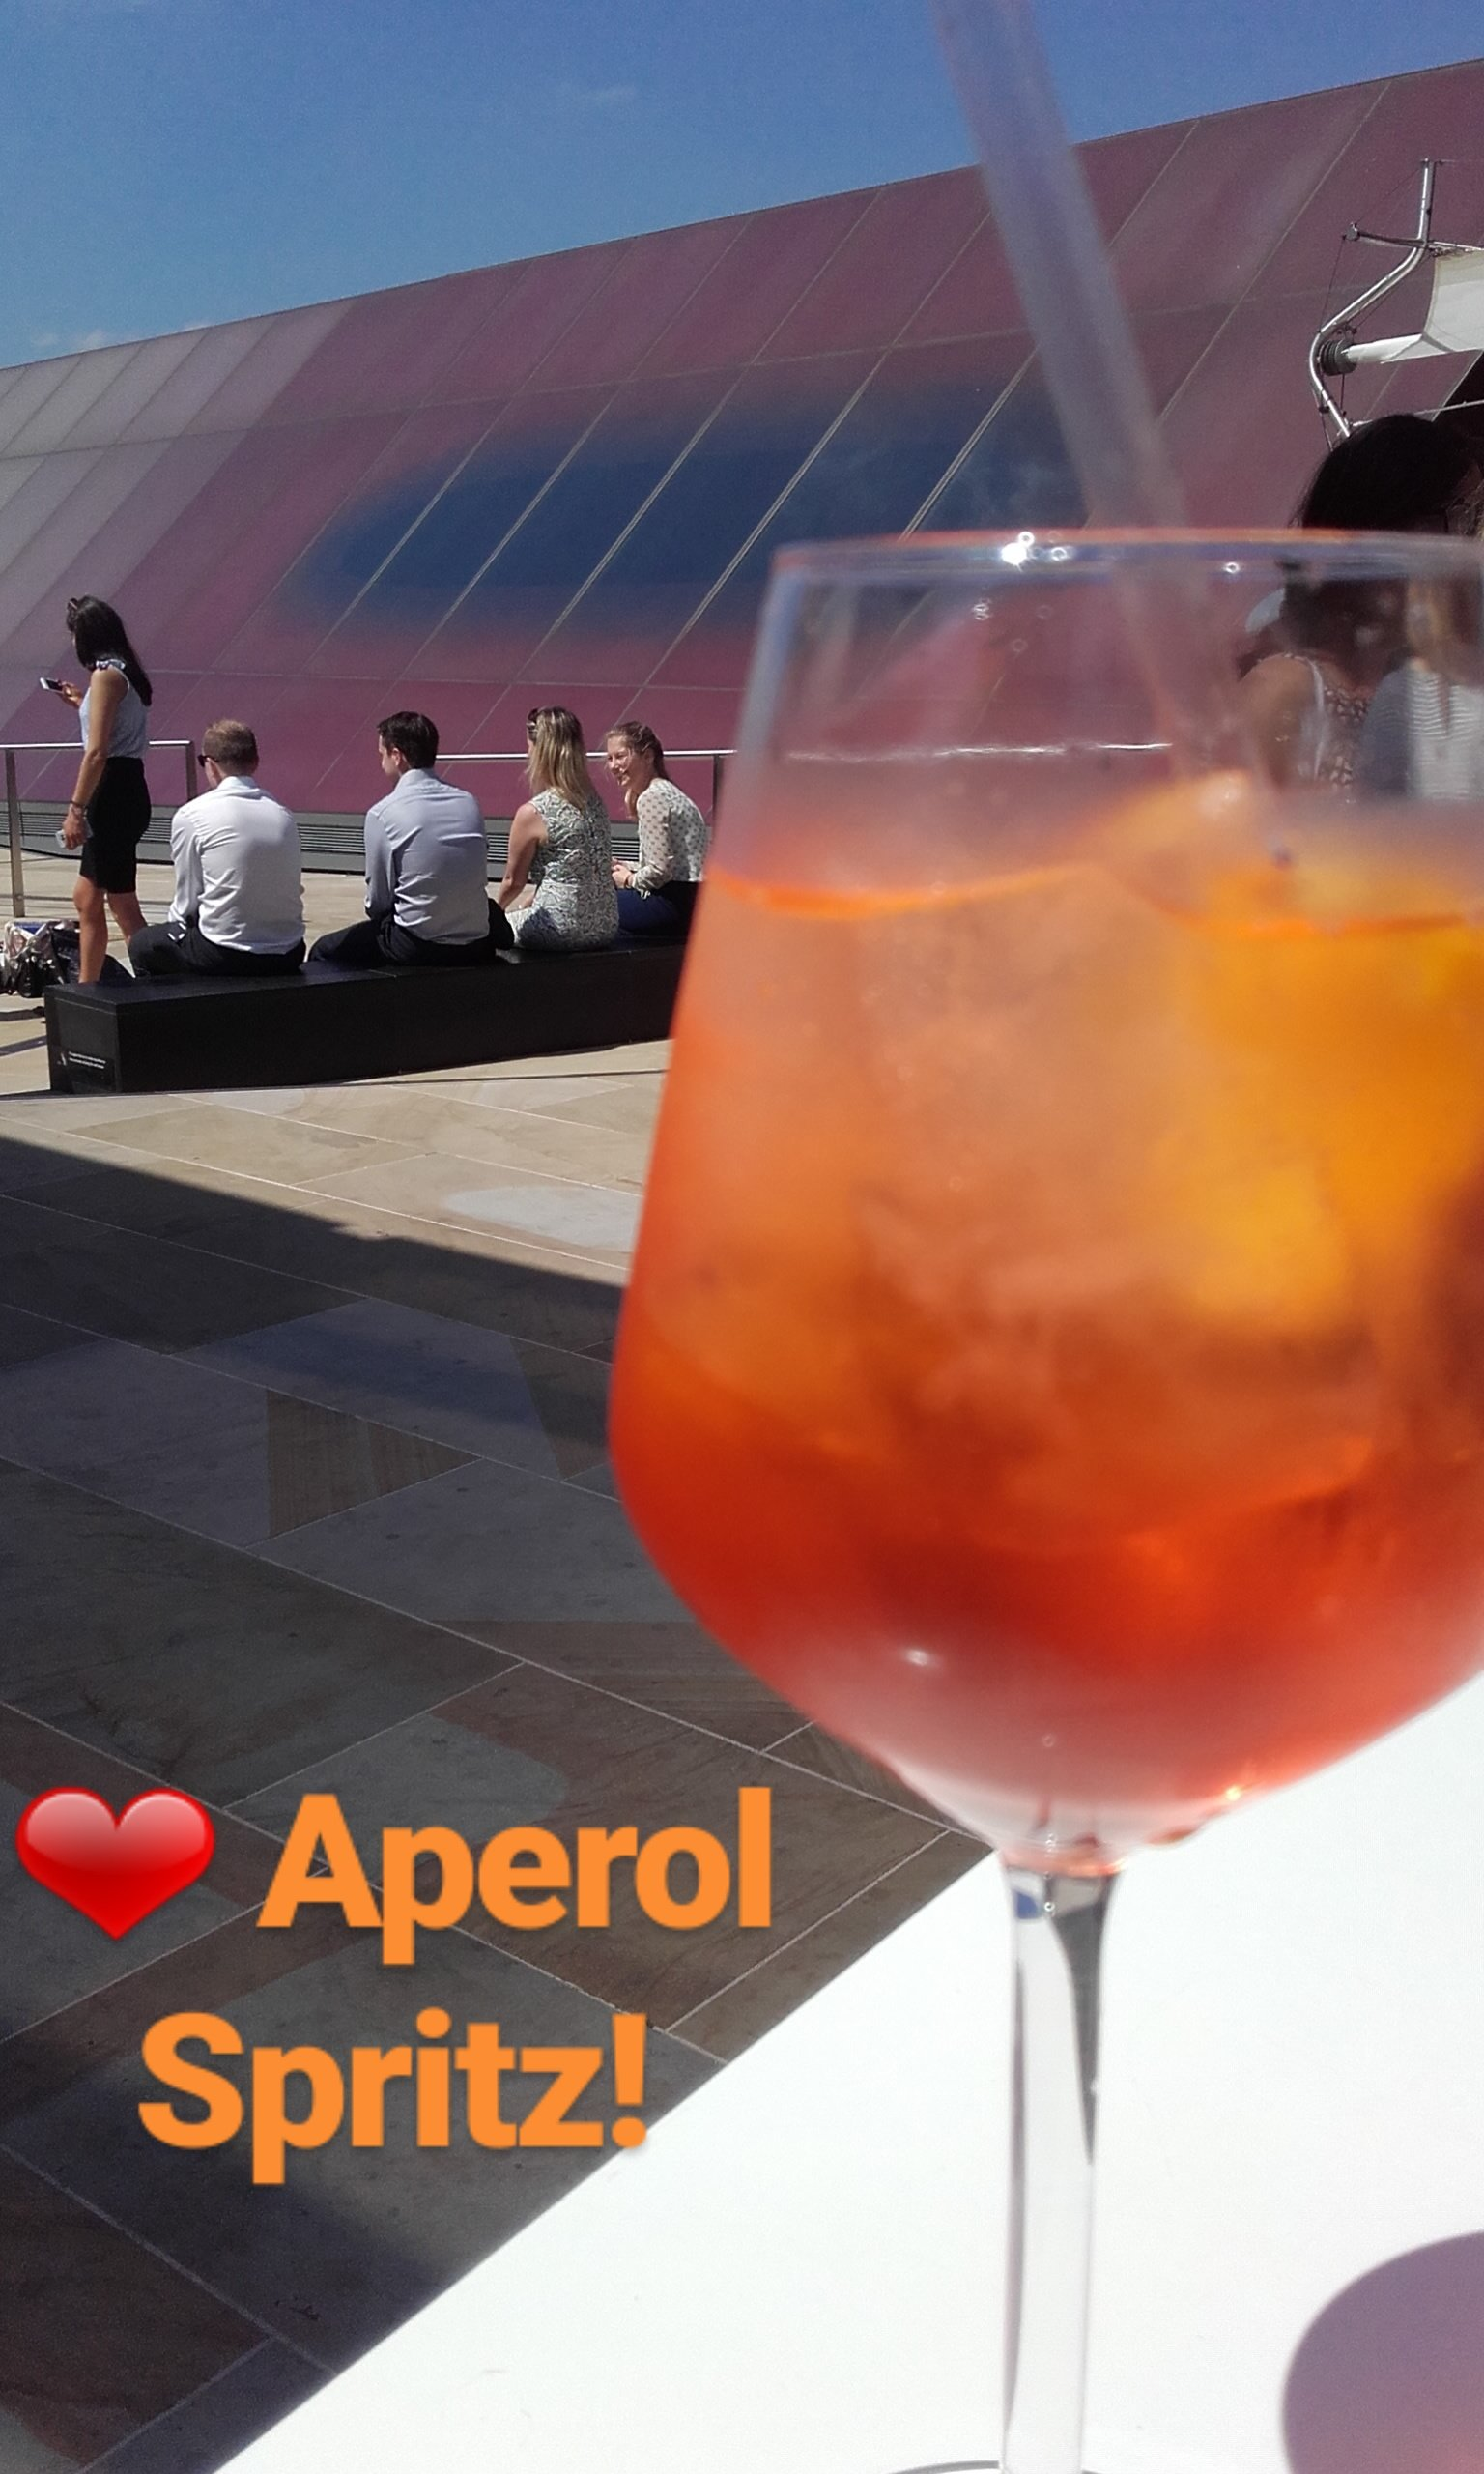 Another Aperol Spritz photo to add to the collection' this one's from Madisons at One New Change rooftop terrace in London